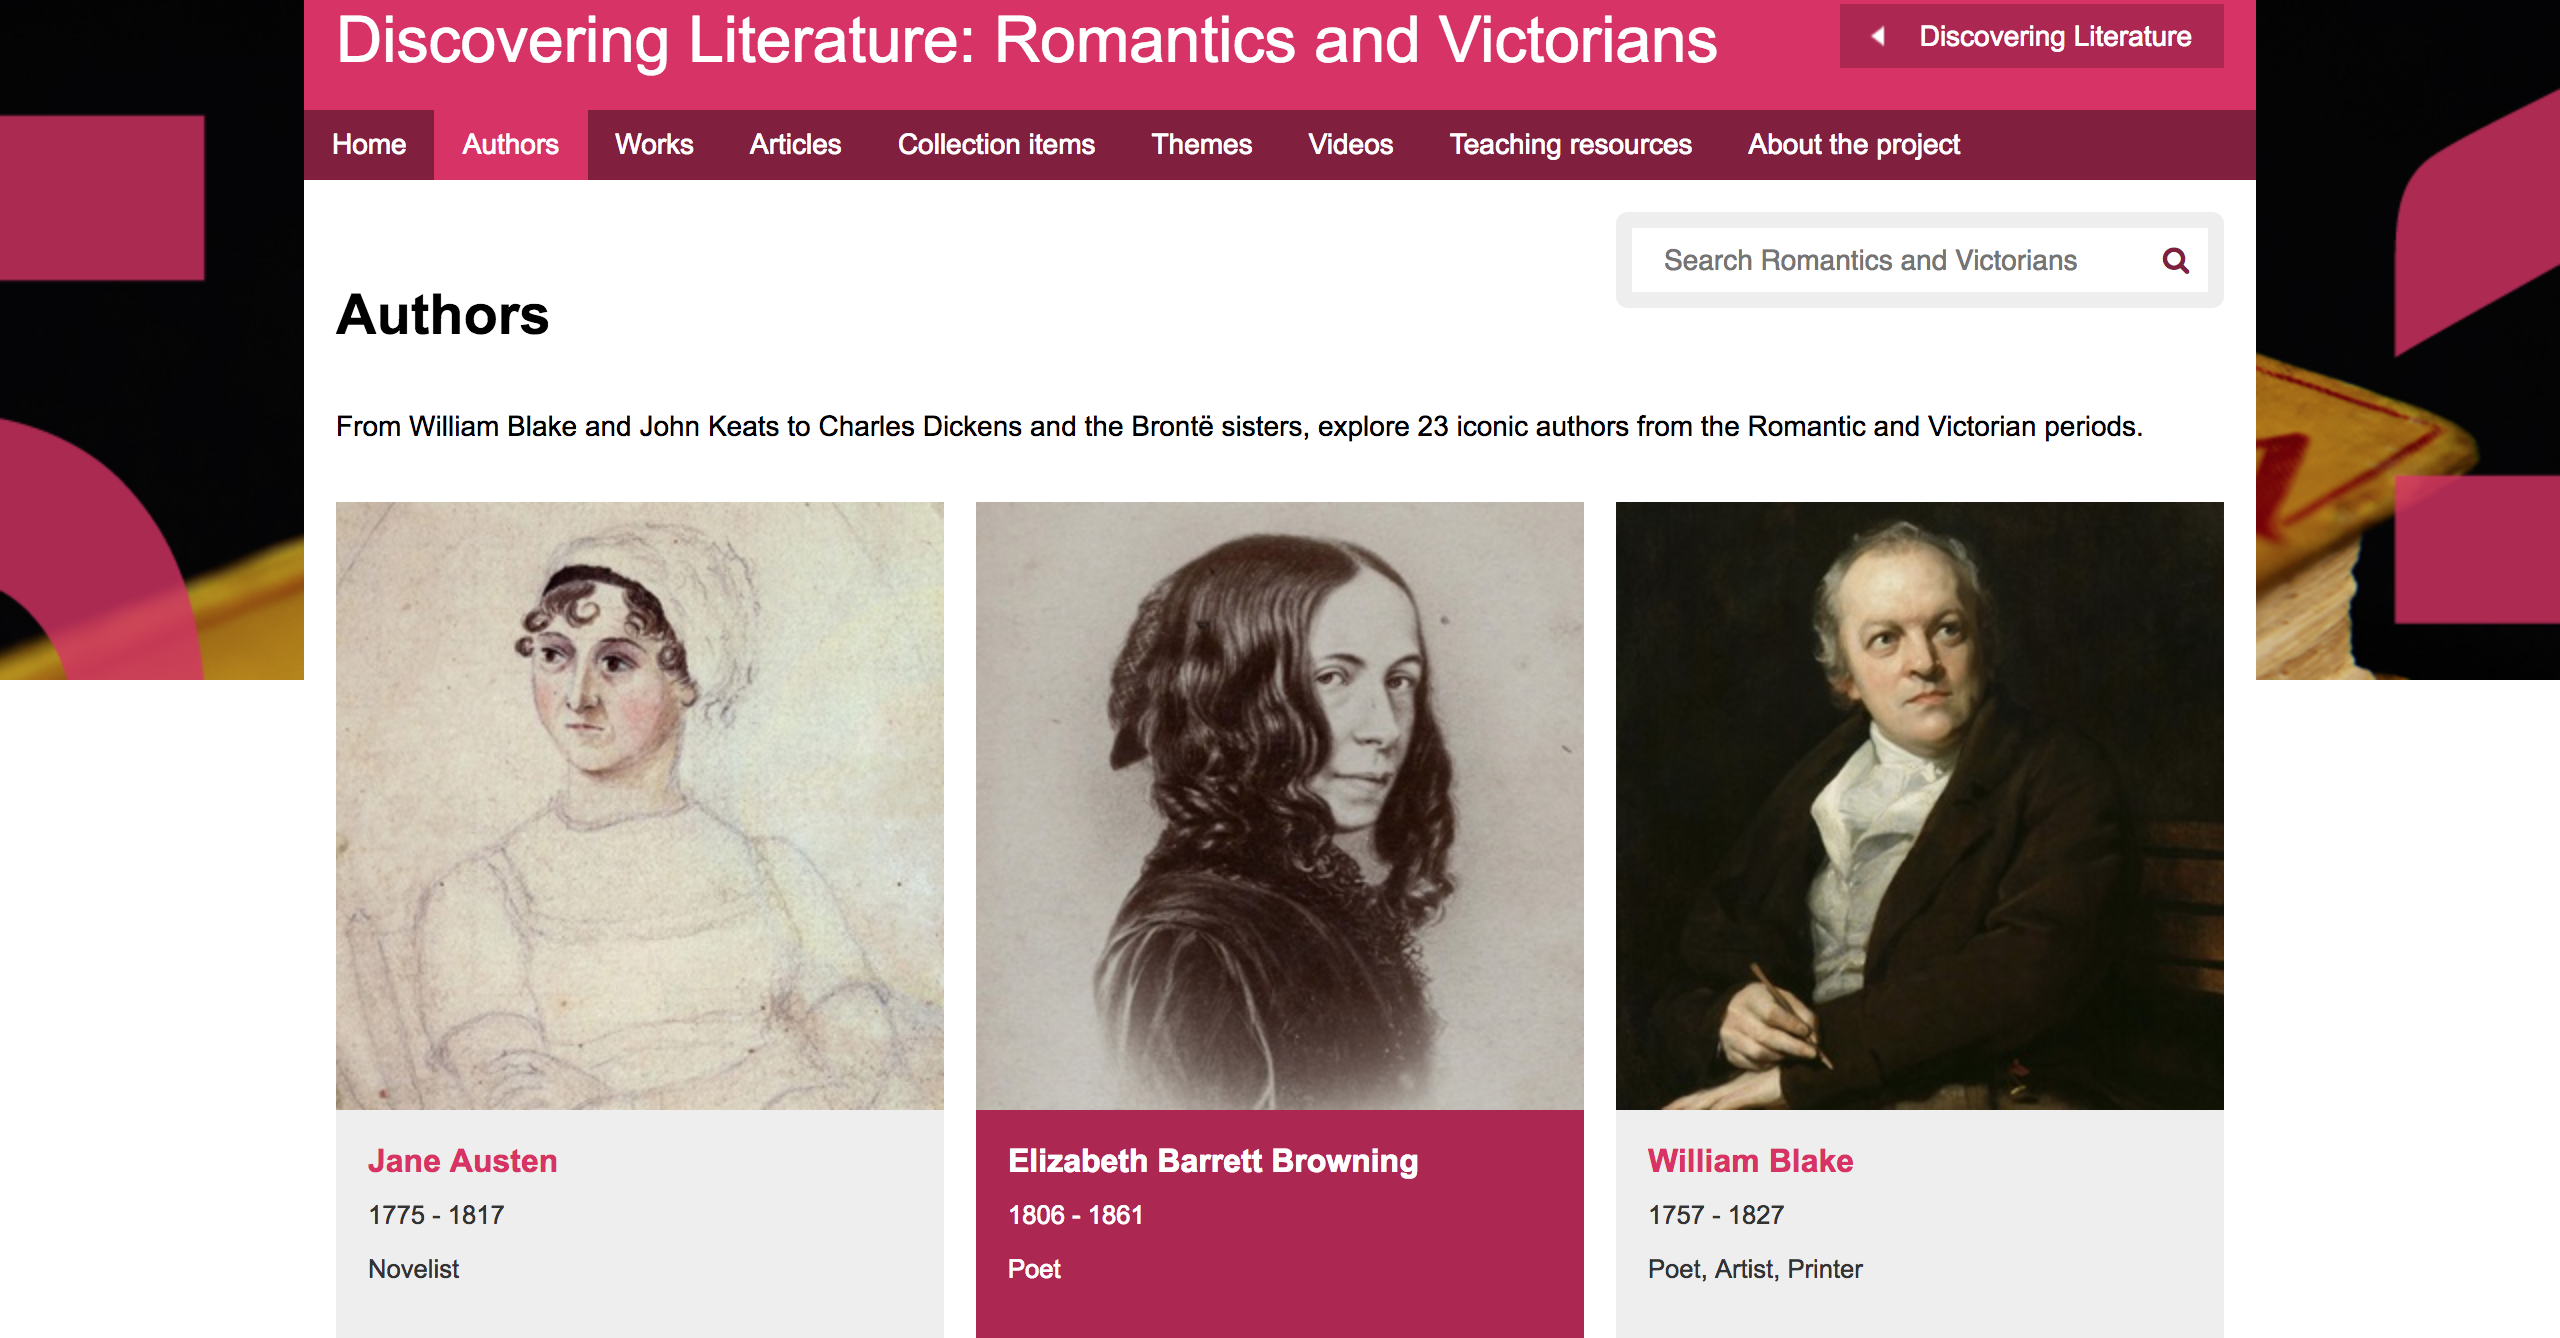 Image of the Romantic and Victorian Authors page. The three authors visible are Jane Austen, EBB, and William Blake